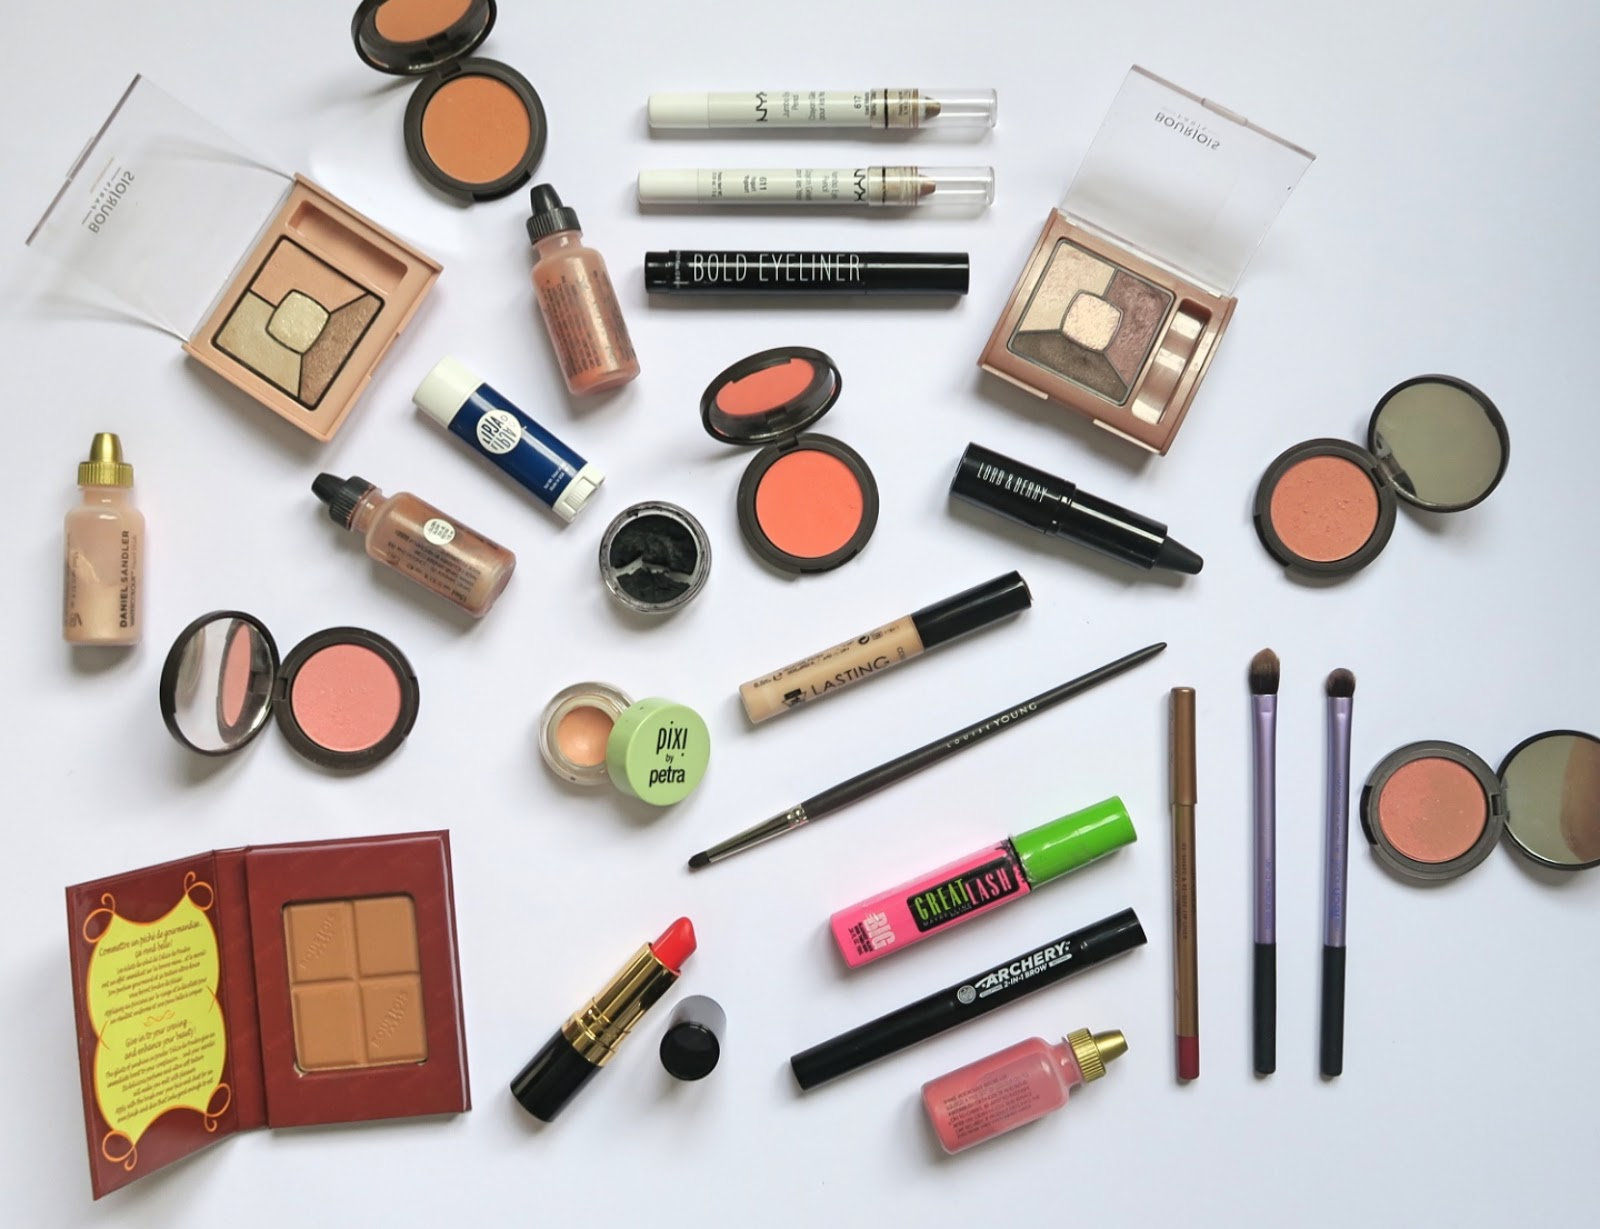 20 Products for £20